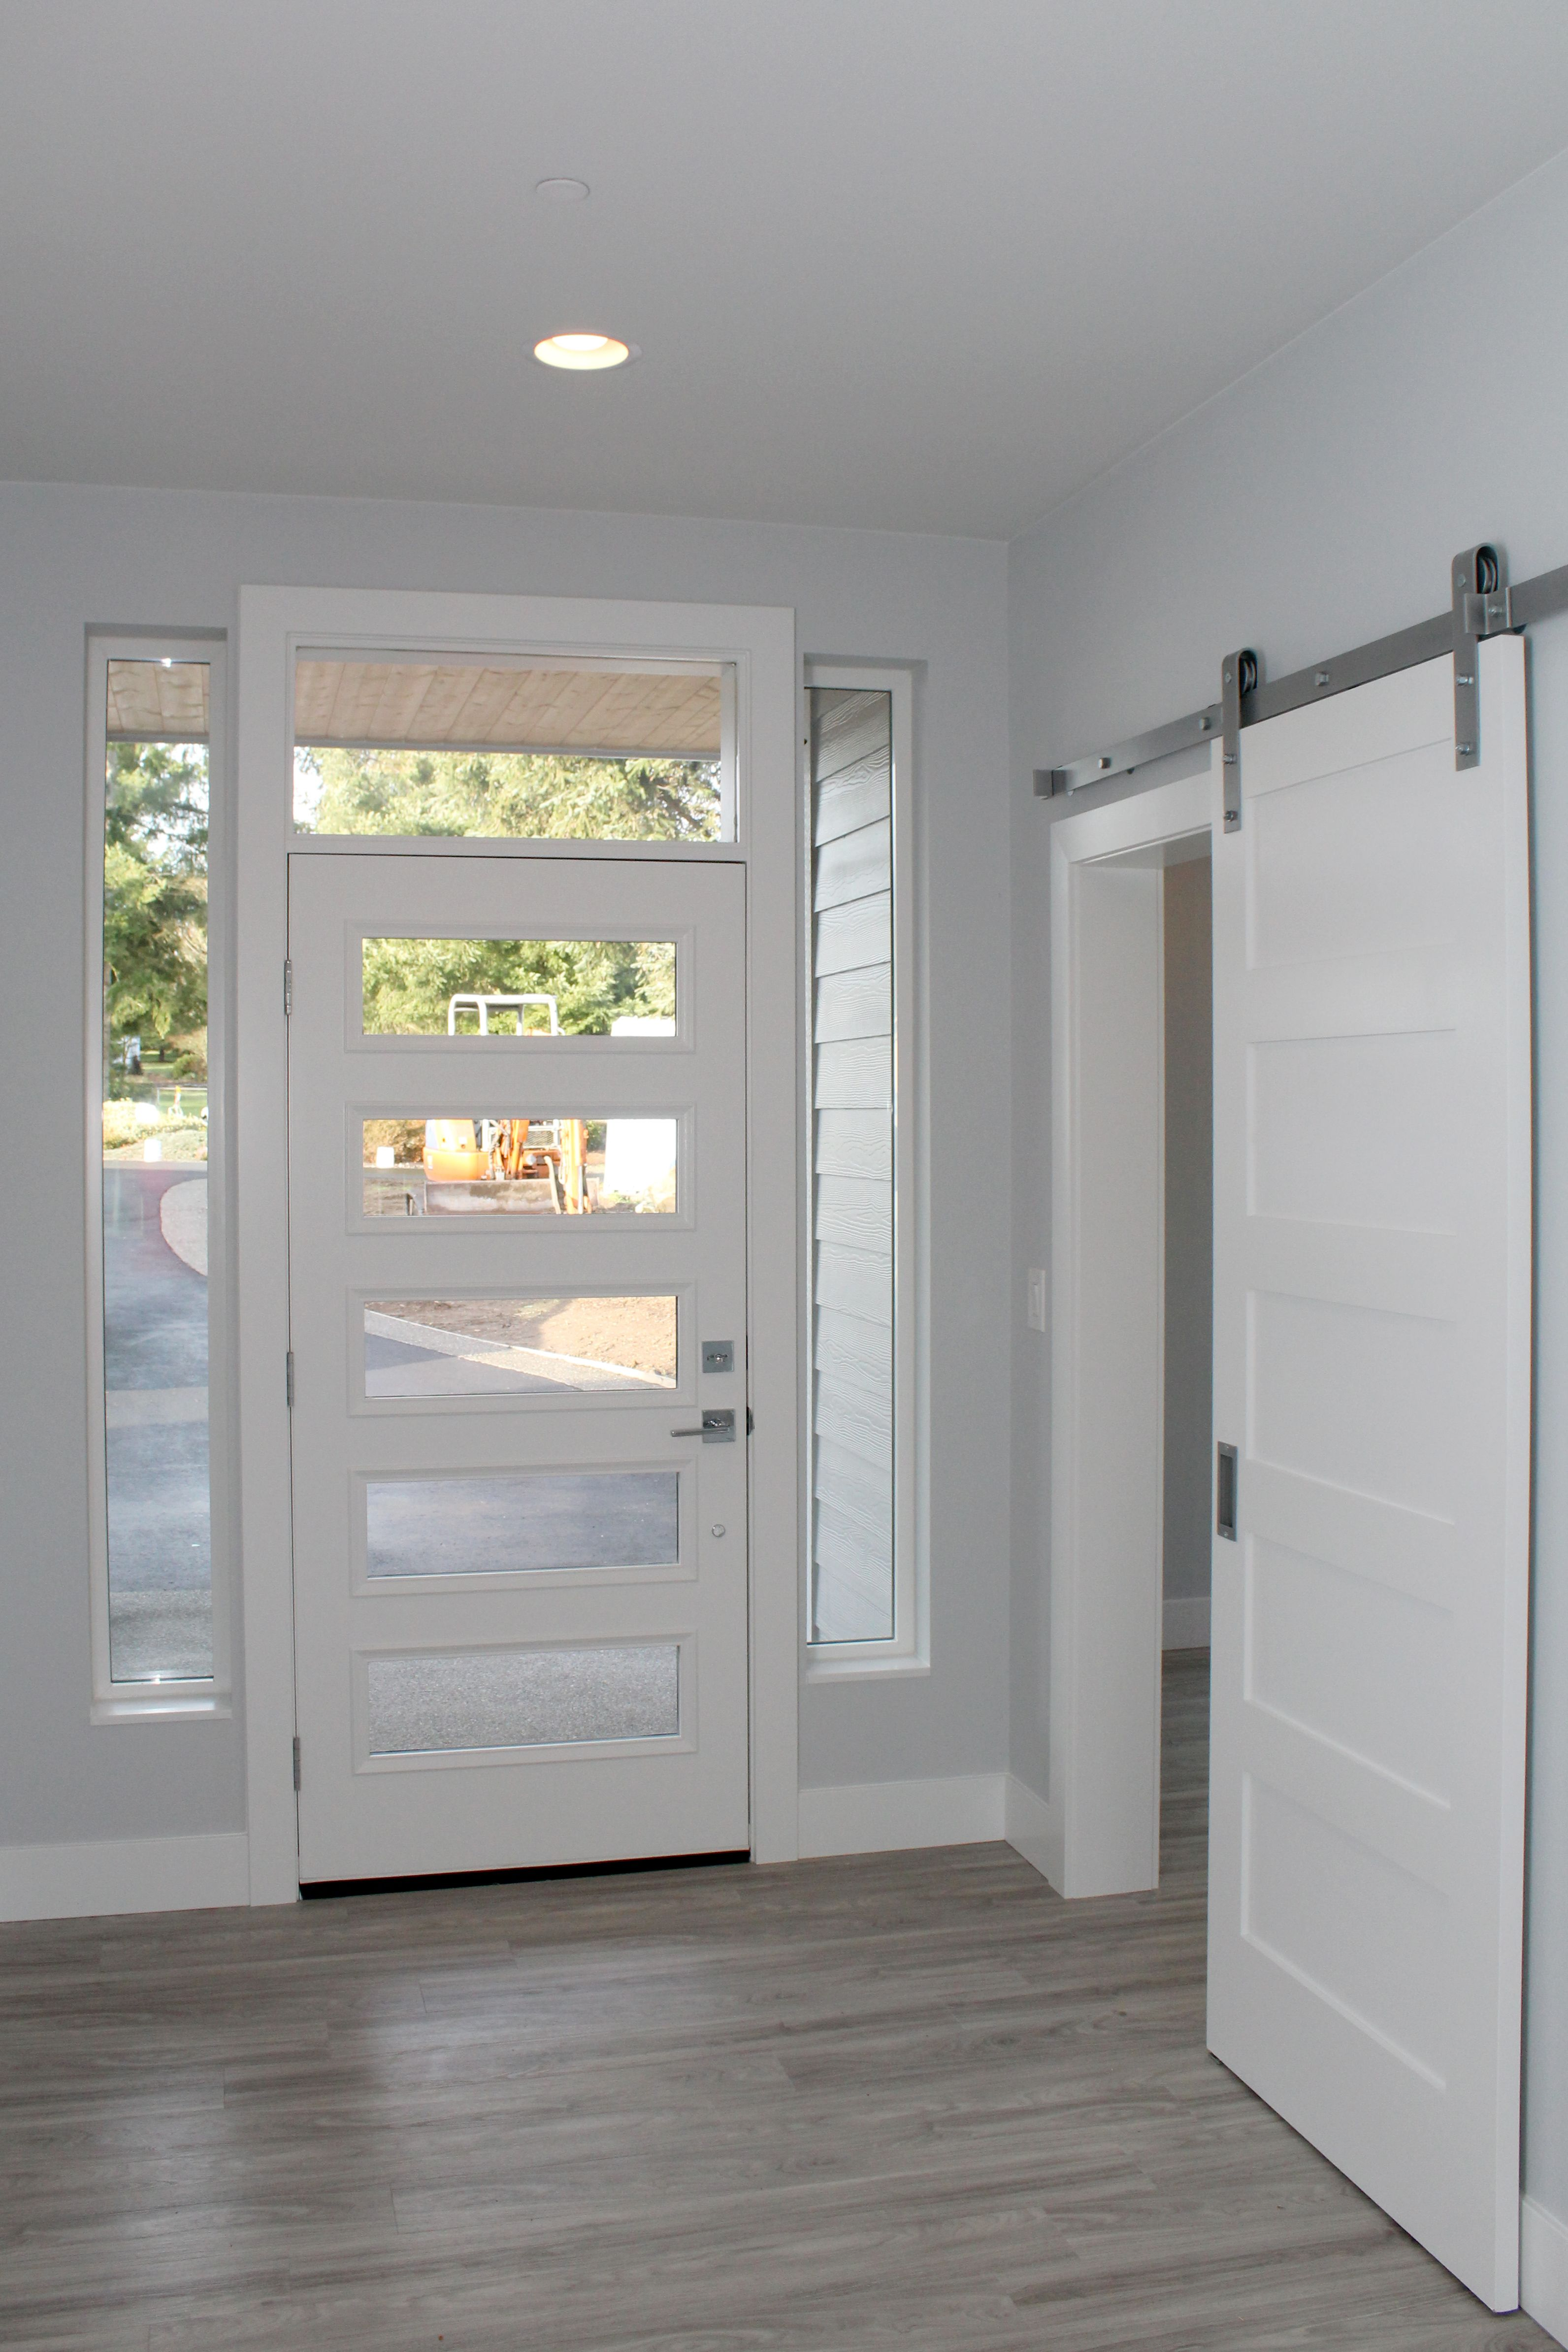 Shaker Window Trim Entry Door Coded 2585 With Sidelights And Toplight Barn Doors